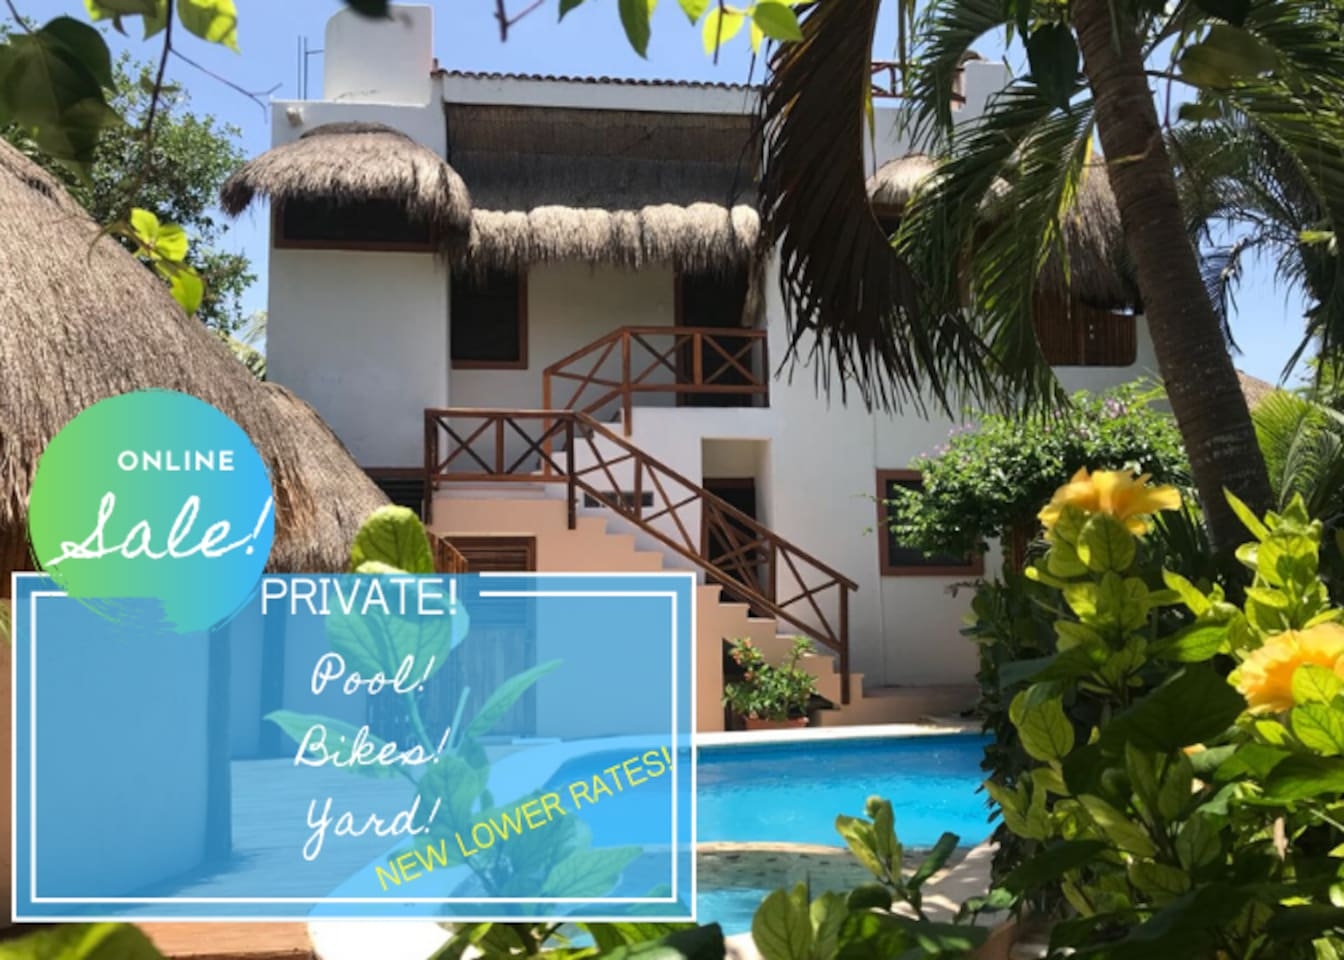 CASA GALERIA COMPOUND, MAIN BUILDING 2BR/2BA + 2 STUDIO GUEST SUITES IN ADJACENT BUILDING ACROSS FROM POOL. POOL AND GARDENS ARE SHARED SPACE.